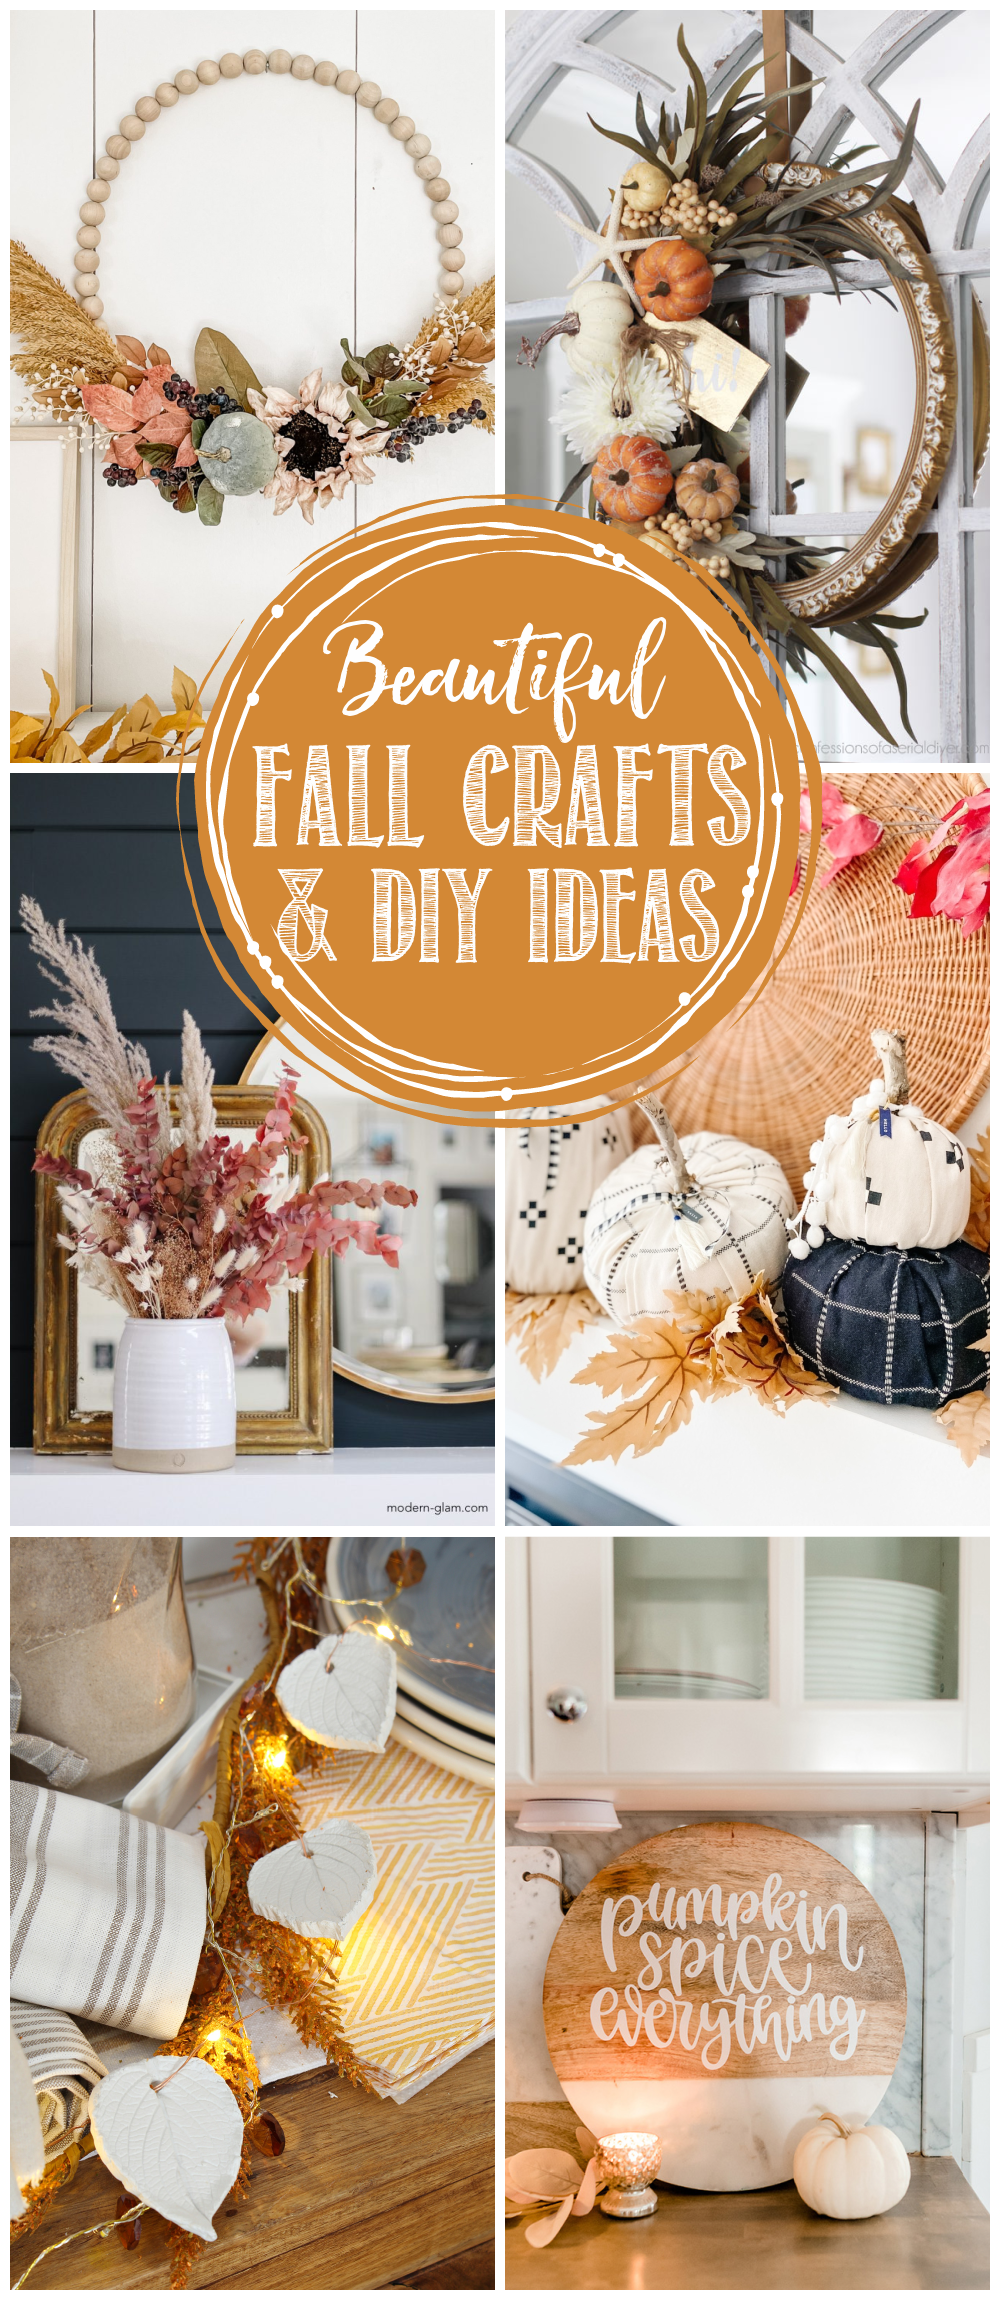 Collection of beautiful fall crafts and DIY ideas.